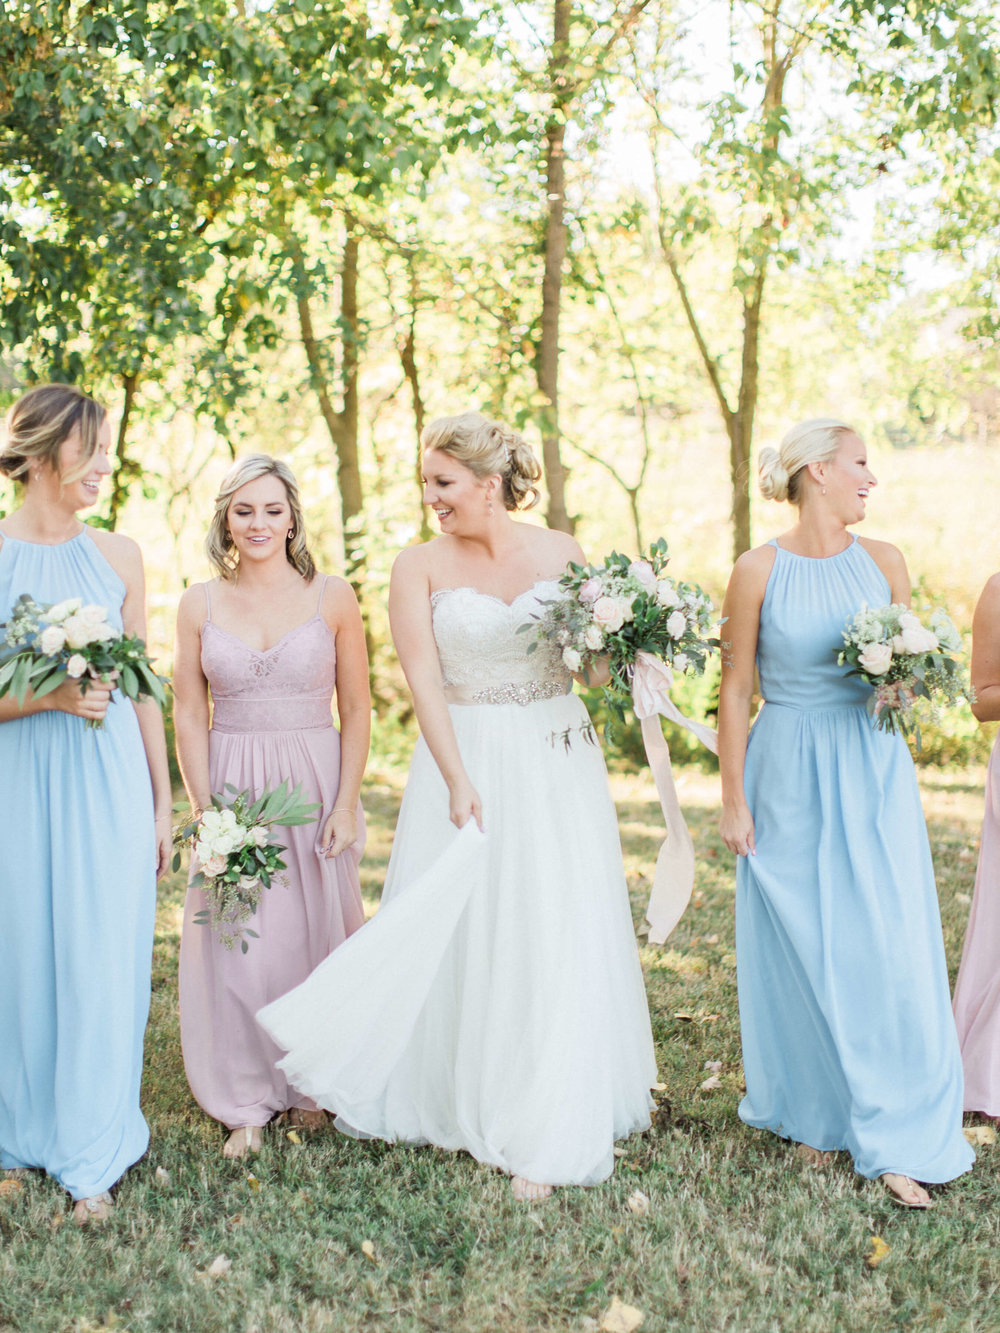 $1500 - discounted from $2500We'll meet with you to review your existing plans and put the finishing touches on your big day.In addition to the pre-event communication and tasks,we will be available for 10 hours the day of, and 2 hours for rehearsal. There will be two coordinators on hand the day of.